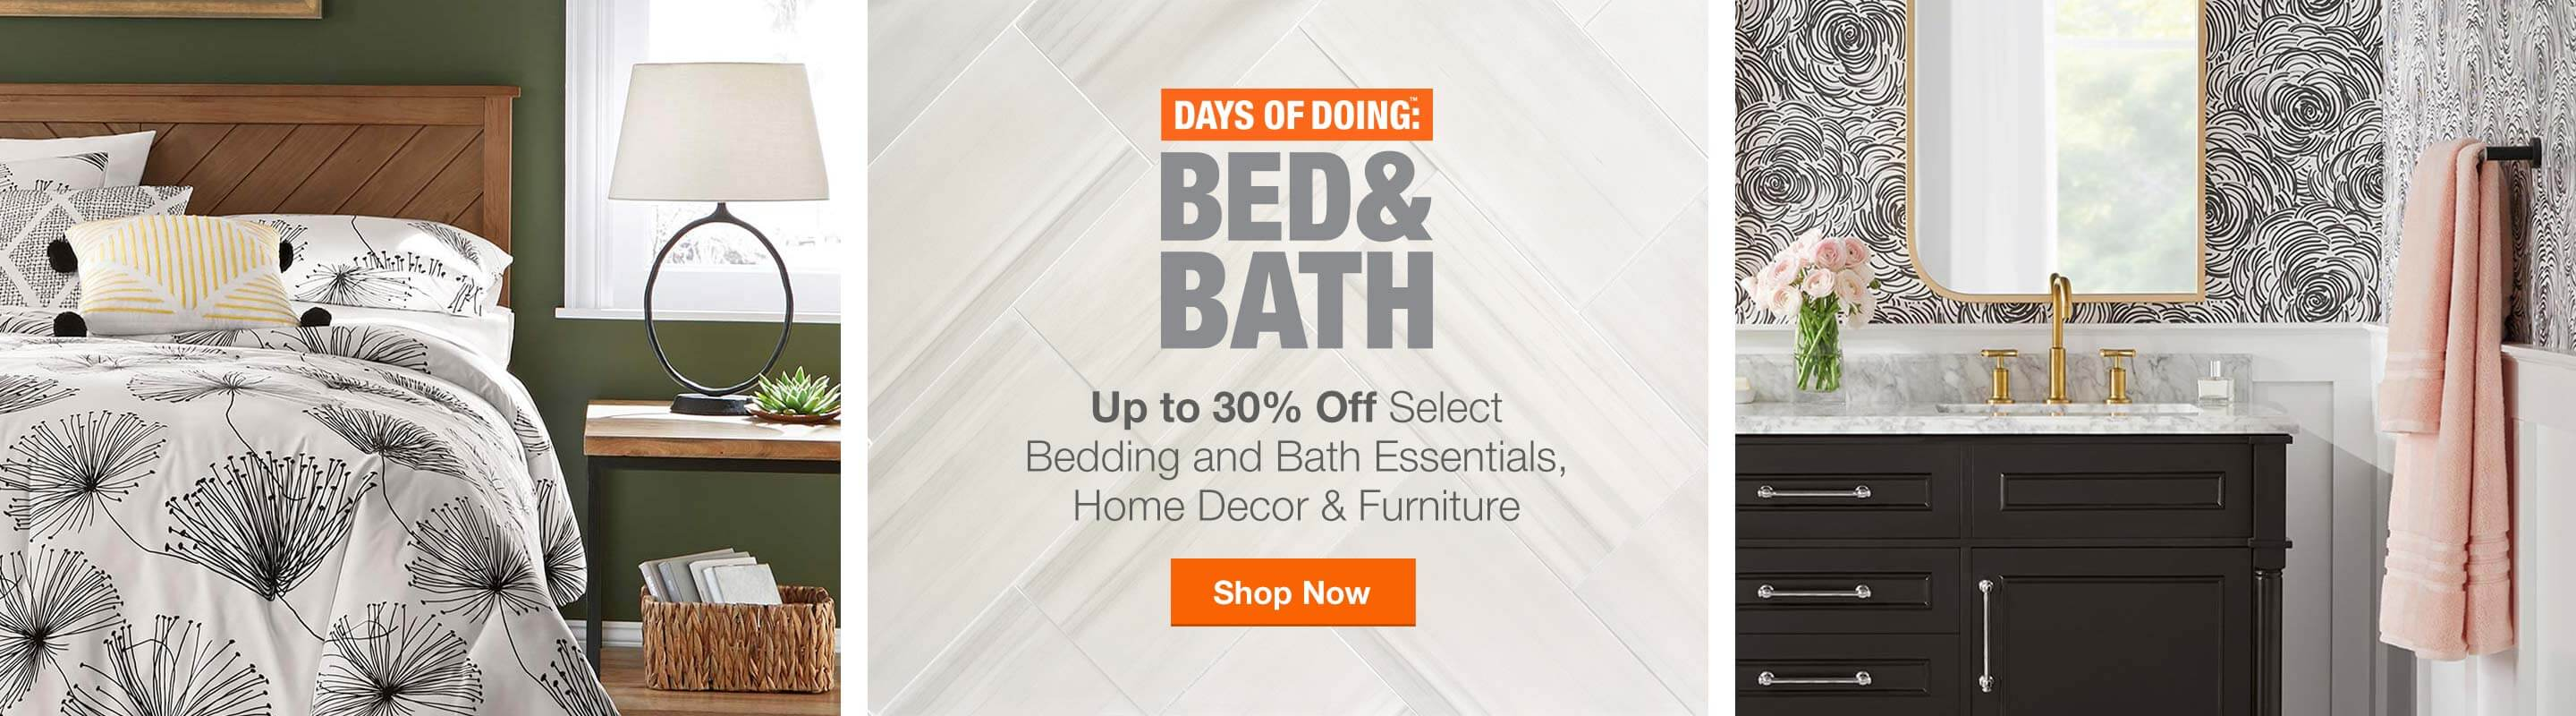 Up to 30% Off Select Bedding & Bath Essentials, Home Decor & Furniture